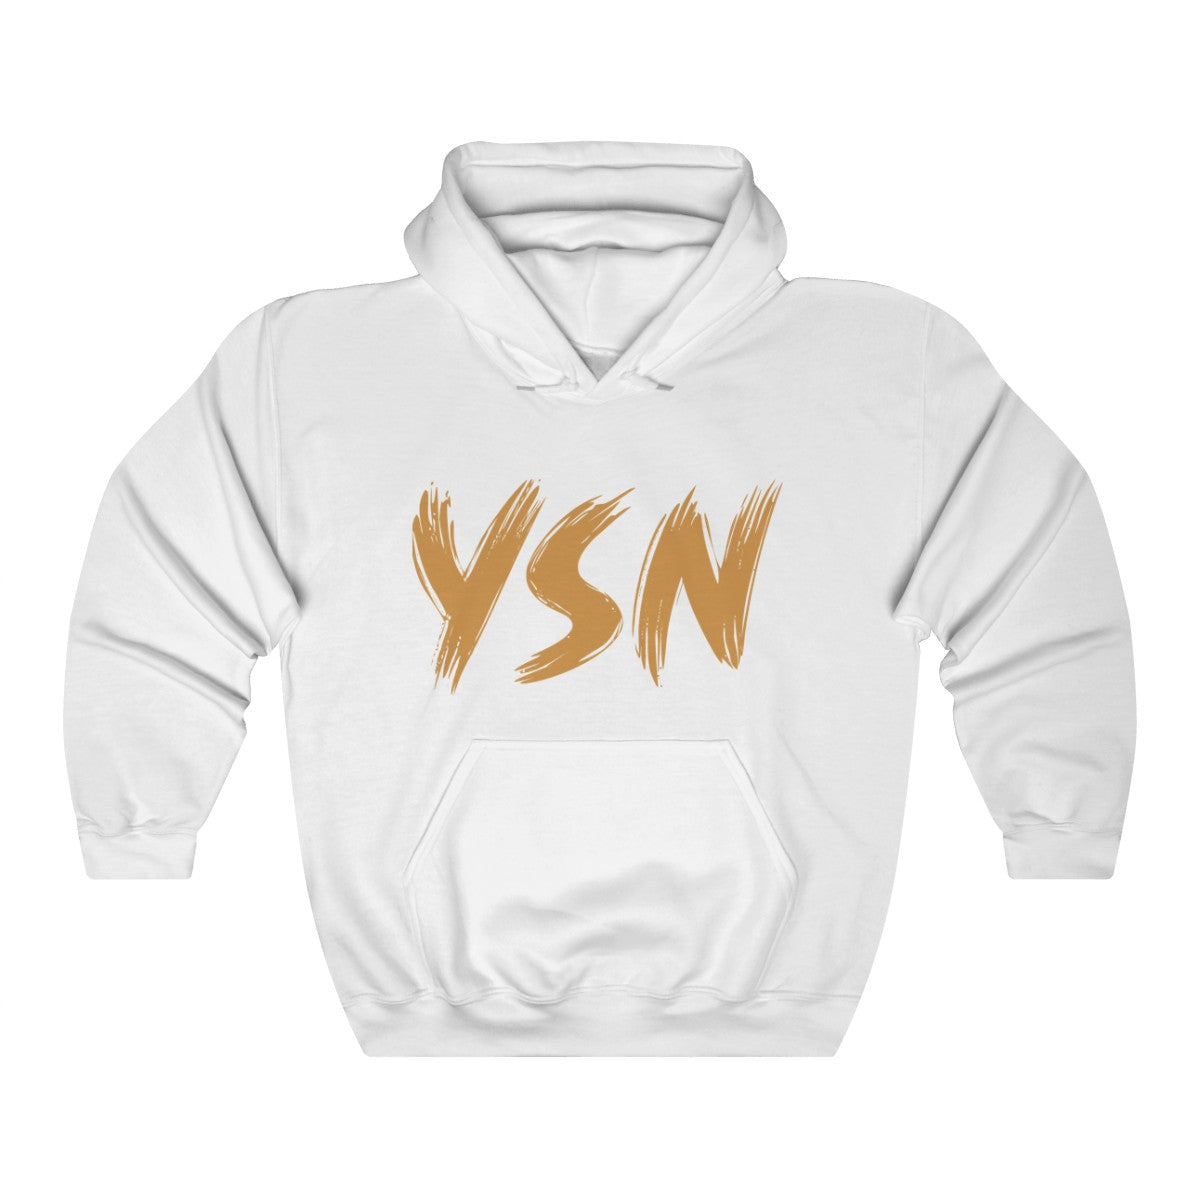 YSN Official Hoodie - White